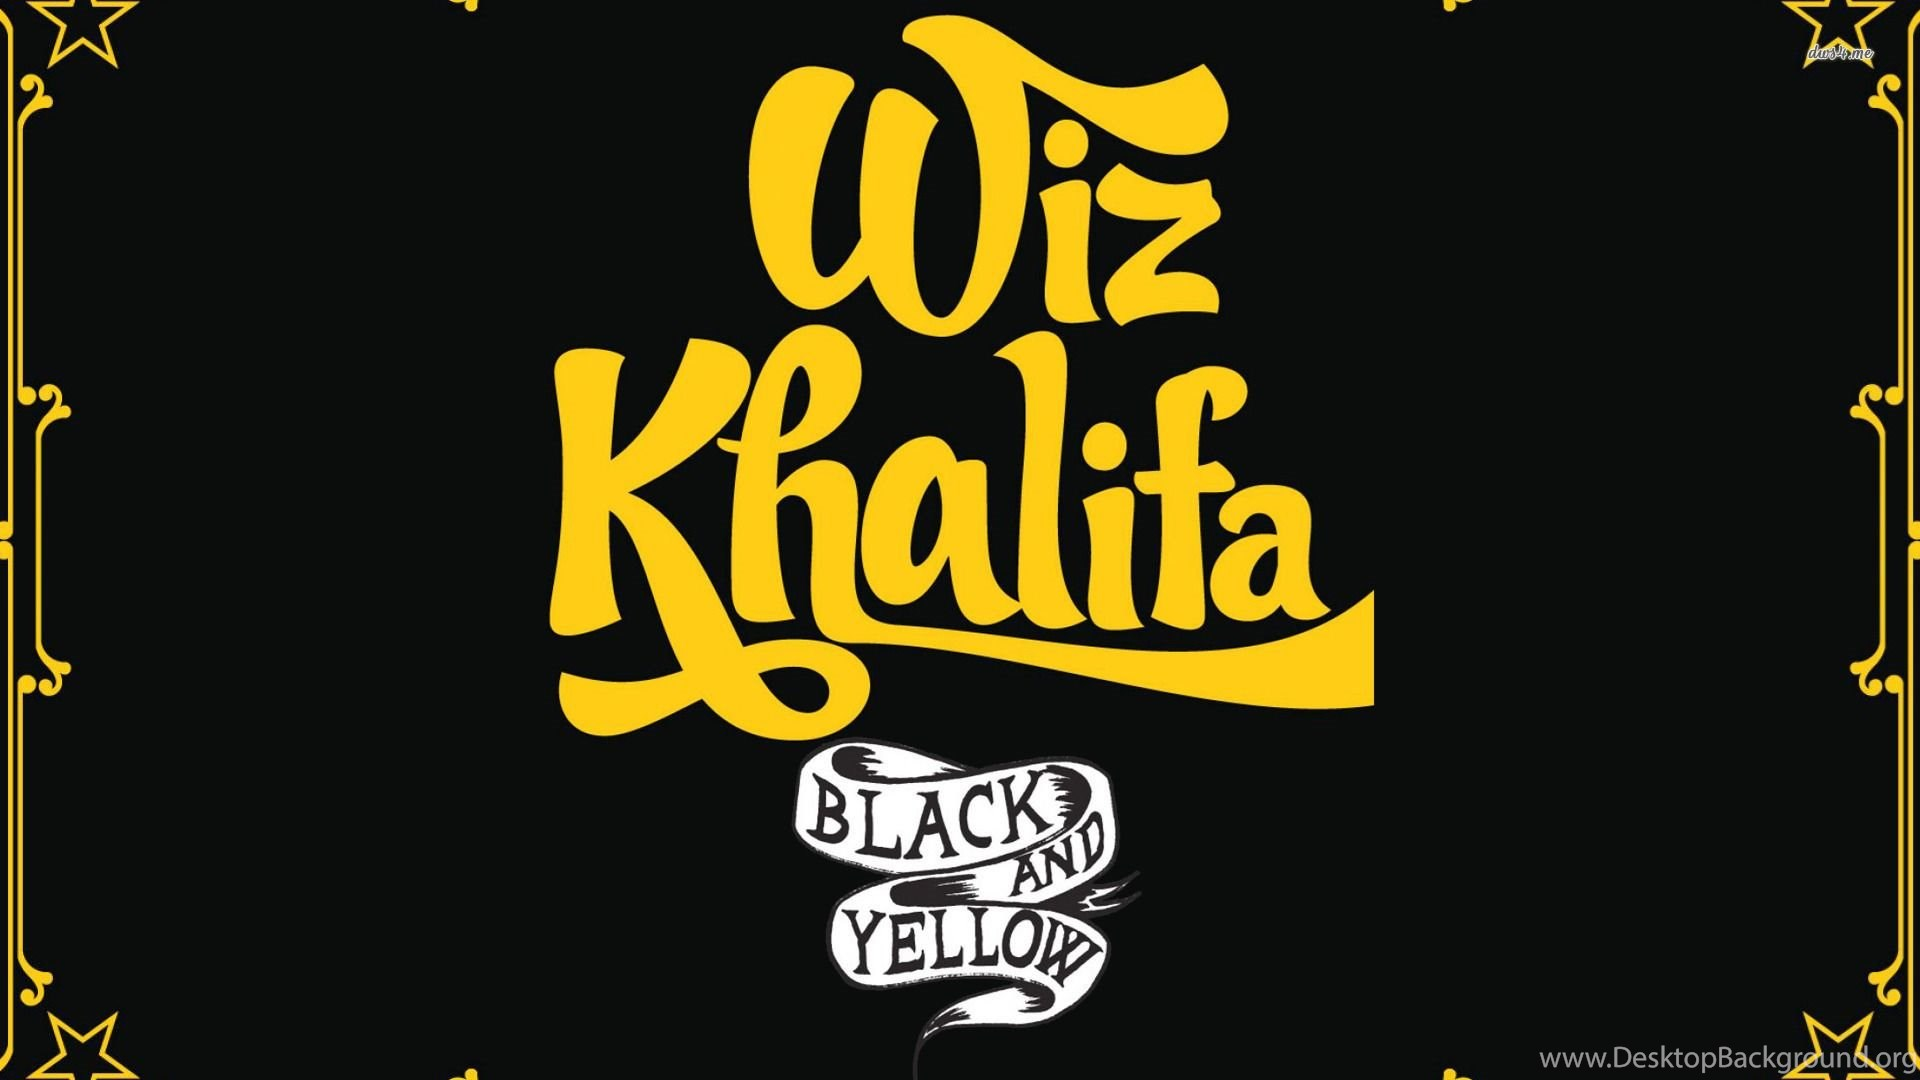 Wiz Khalifa Black And Yellow Wallpapers Music Wallpapers Desktop